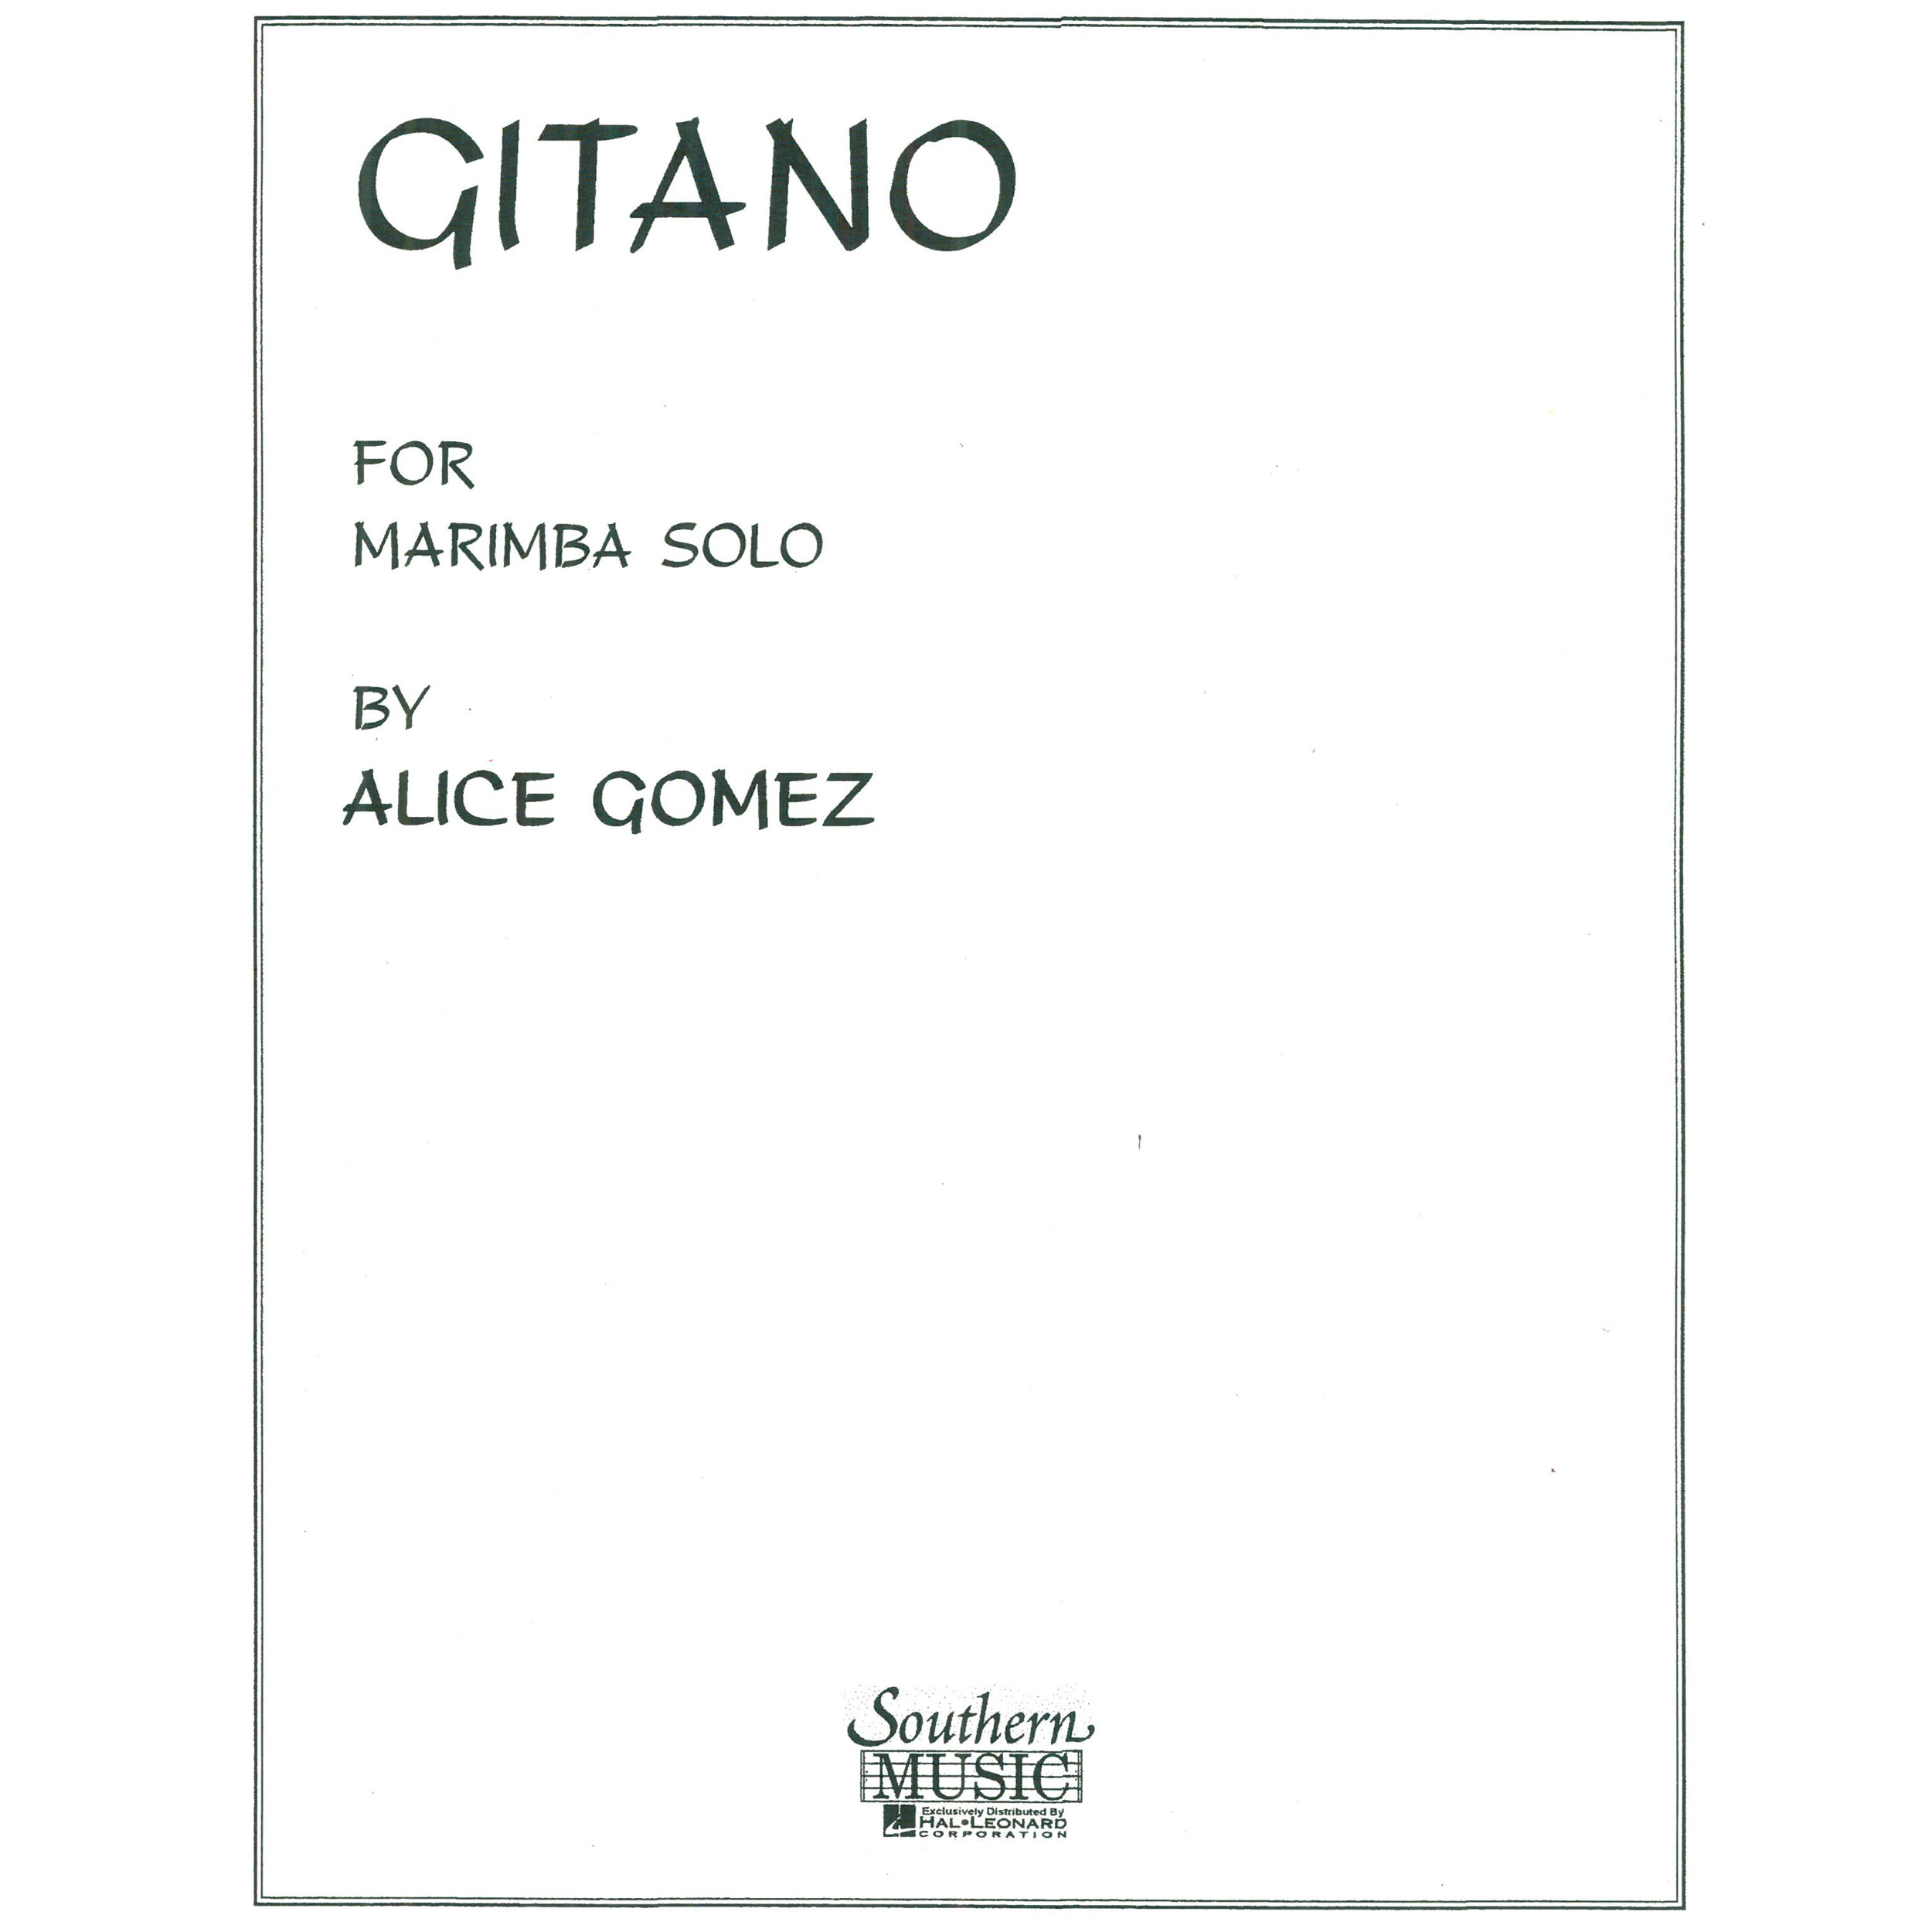 Gitano by Alice Gomez